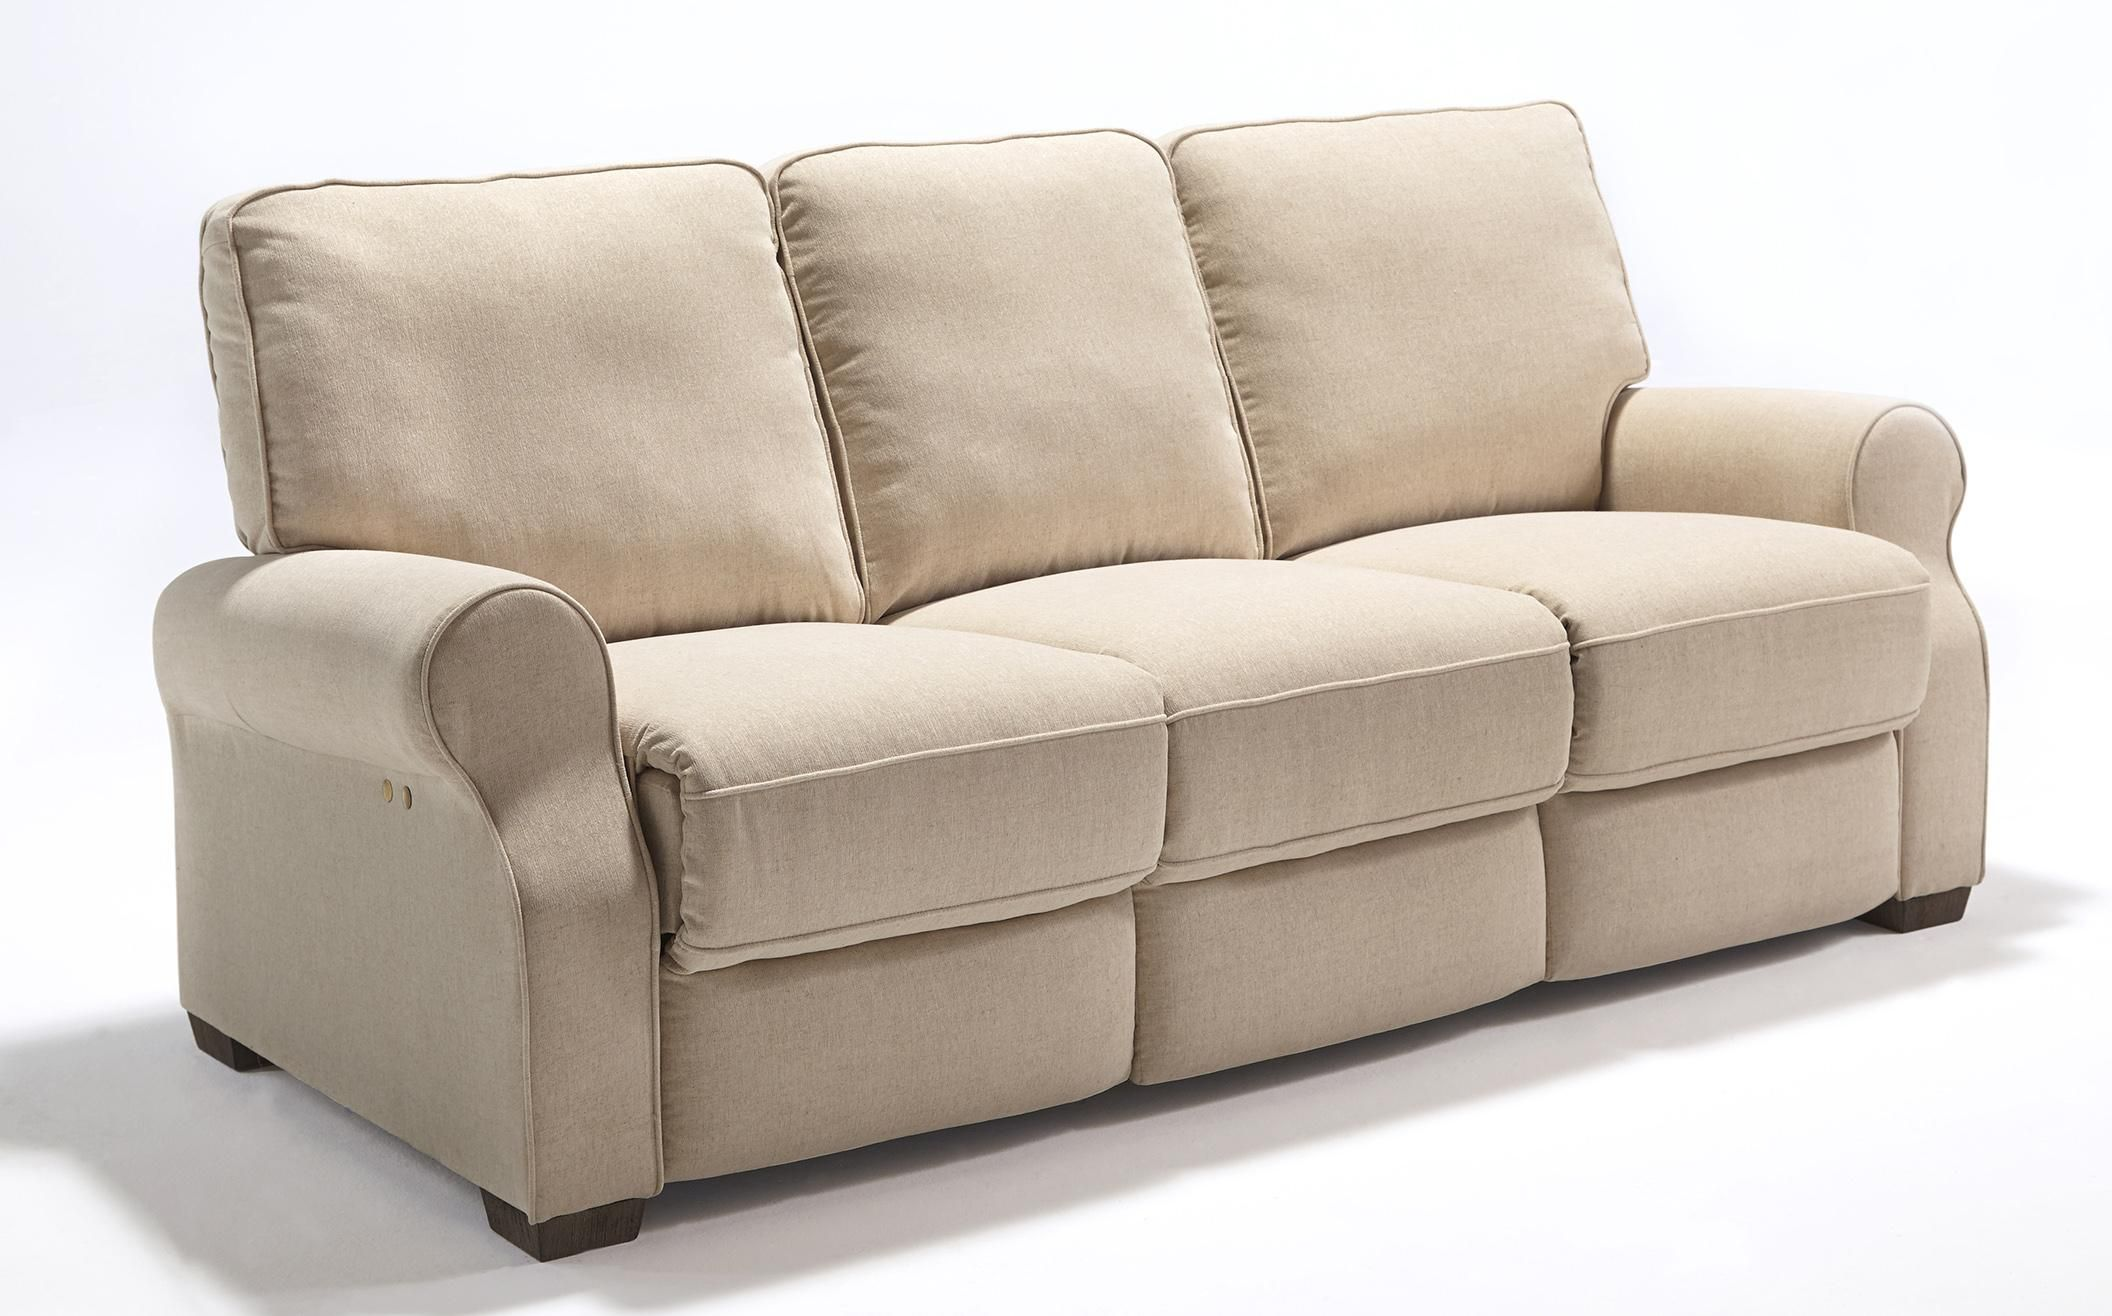 sofas sofa ratings brown leather the best uk reviews reclining recliner seater